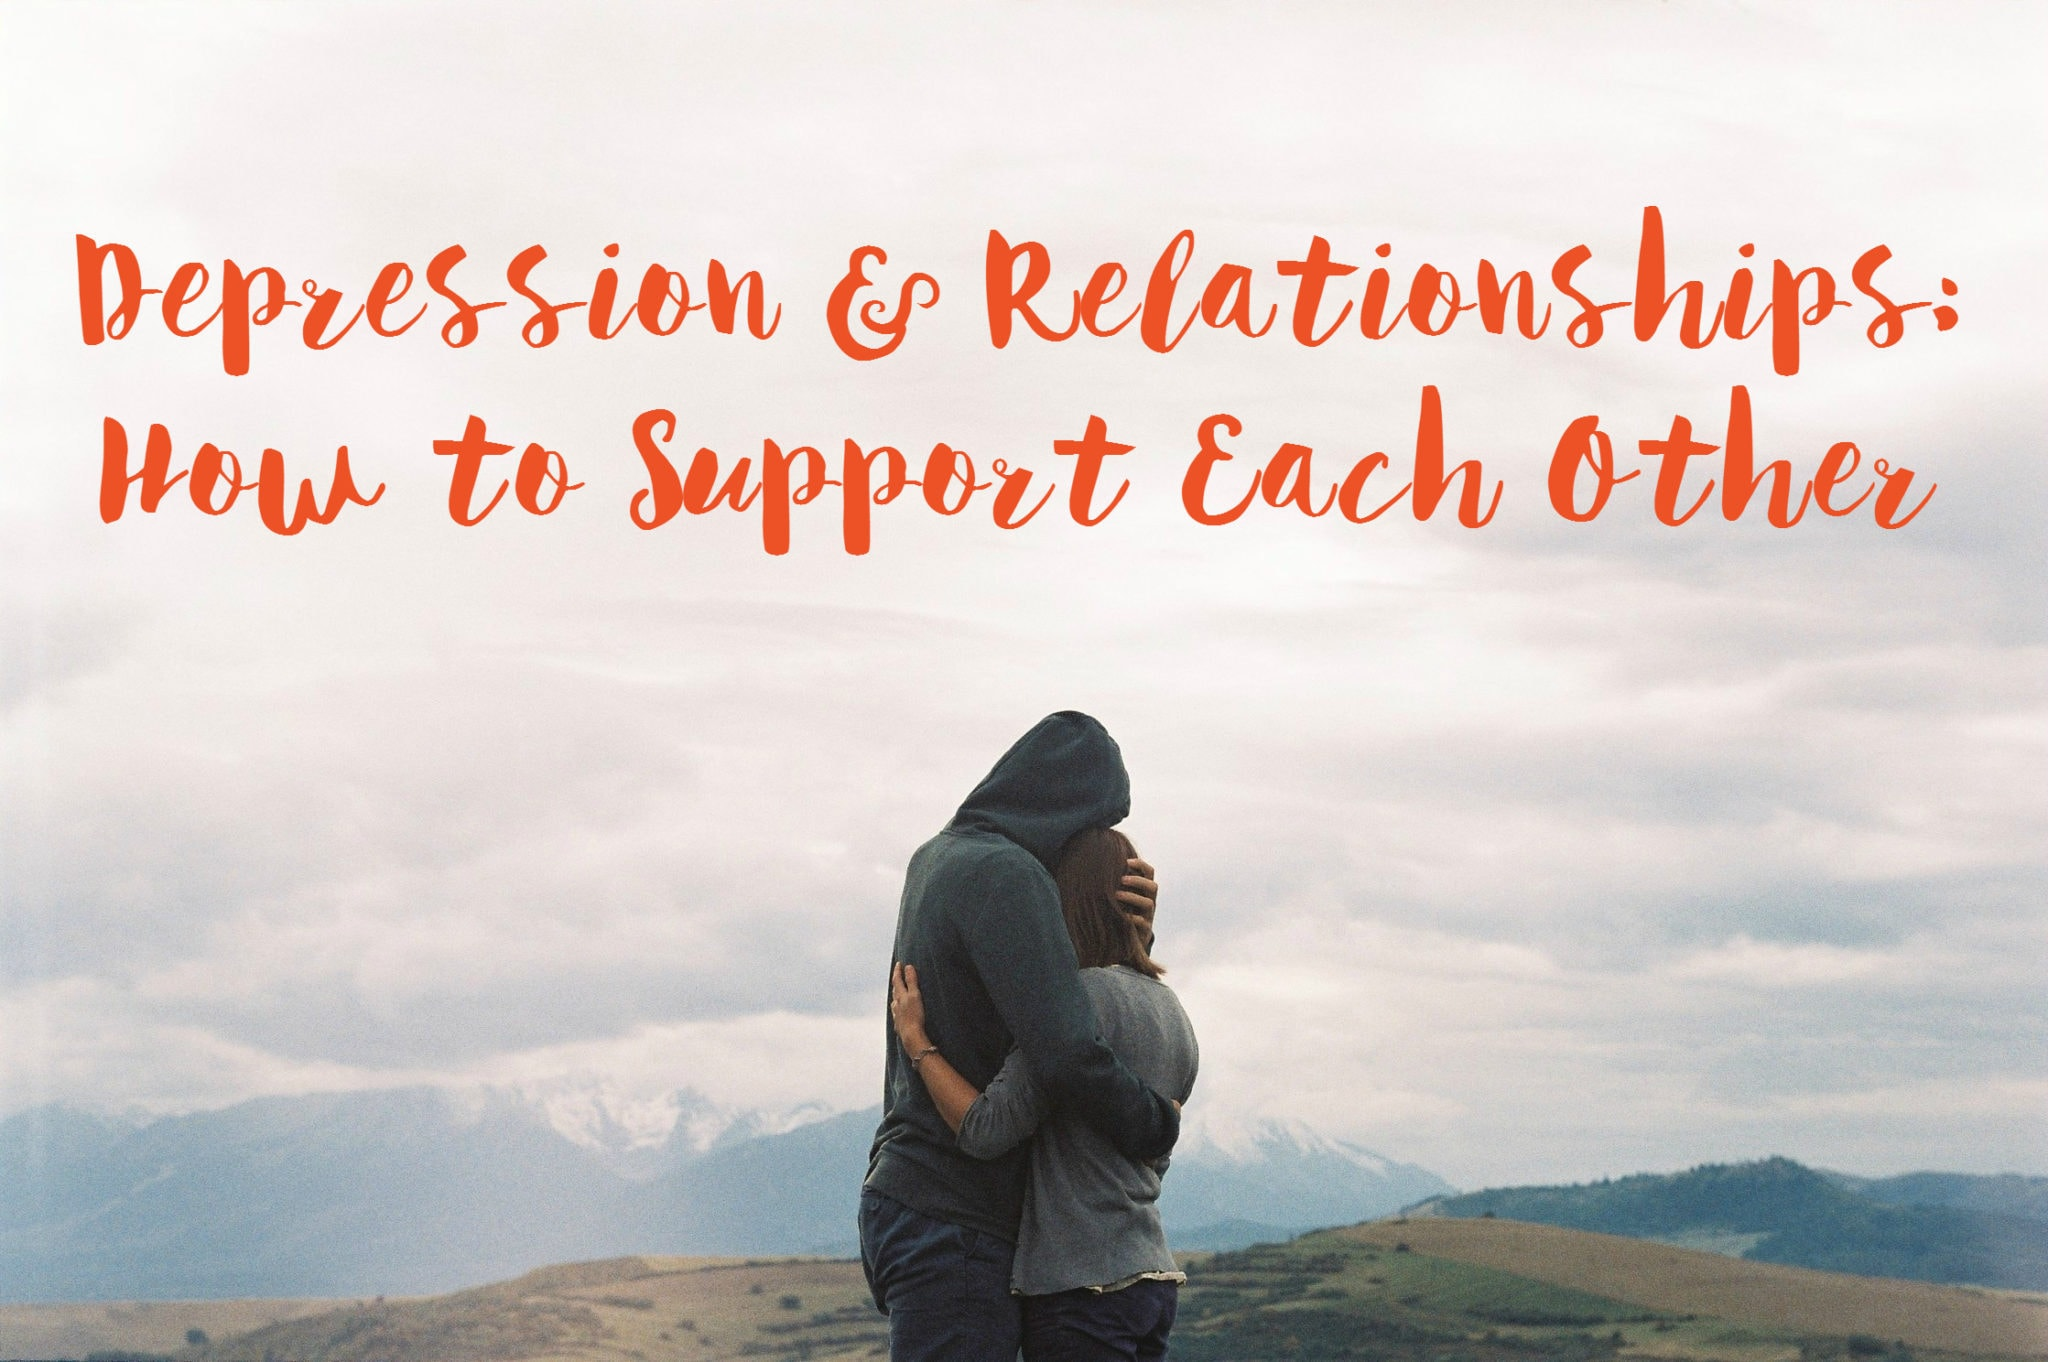 How depression affects romantic relationships